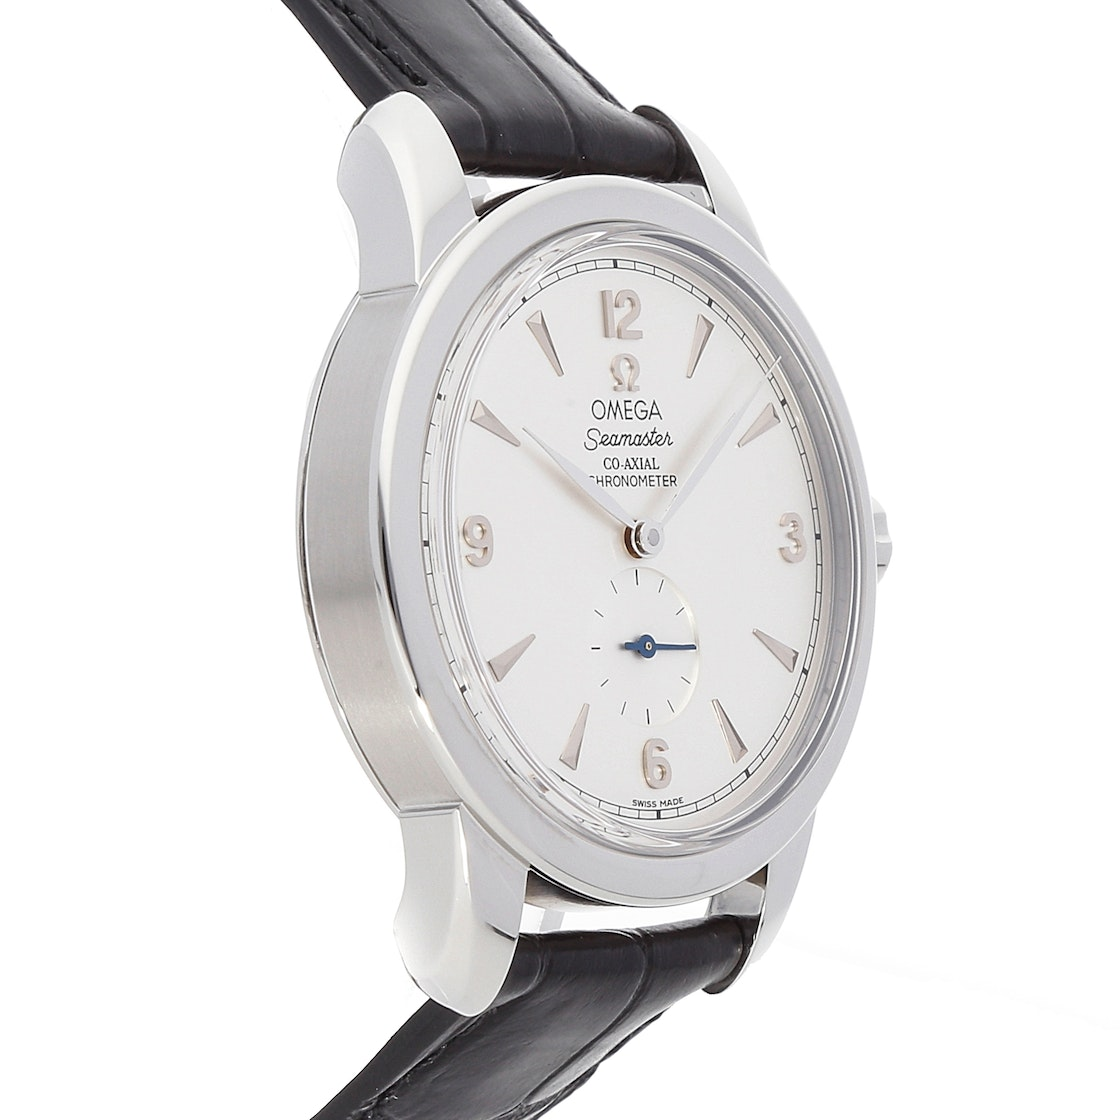 Omega Seamaster Olympic Collection London 2012 522.23.39.20.02.001